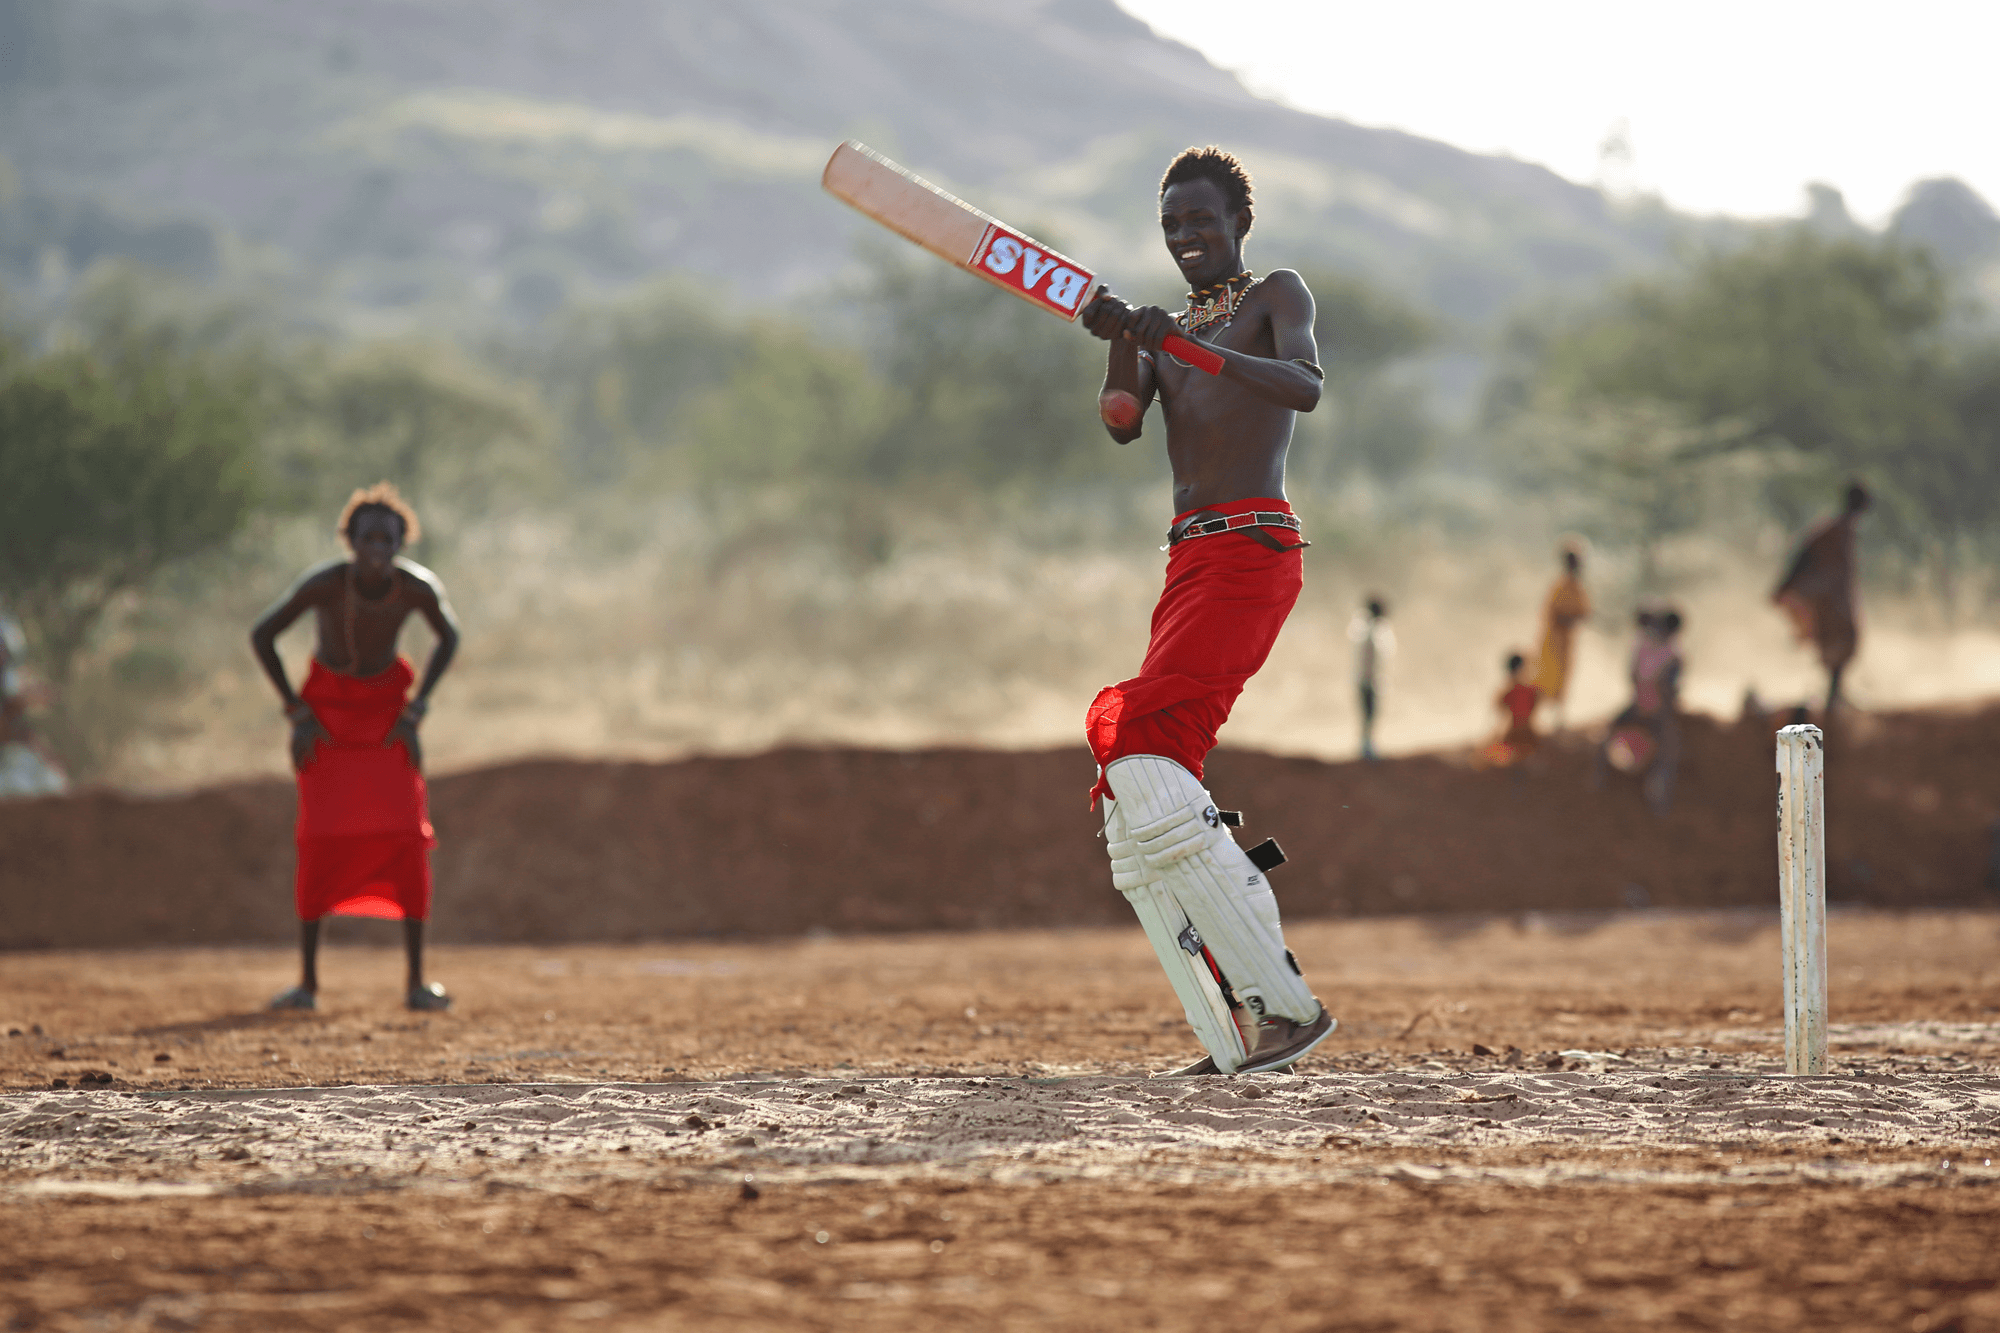 daniel_batting_kenya